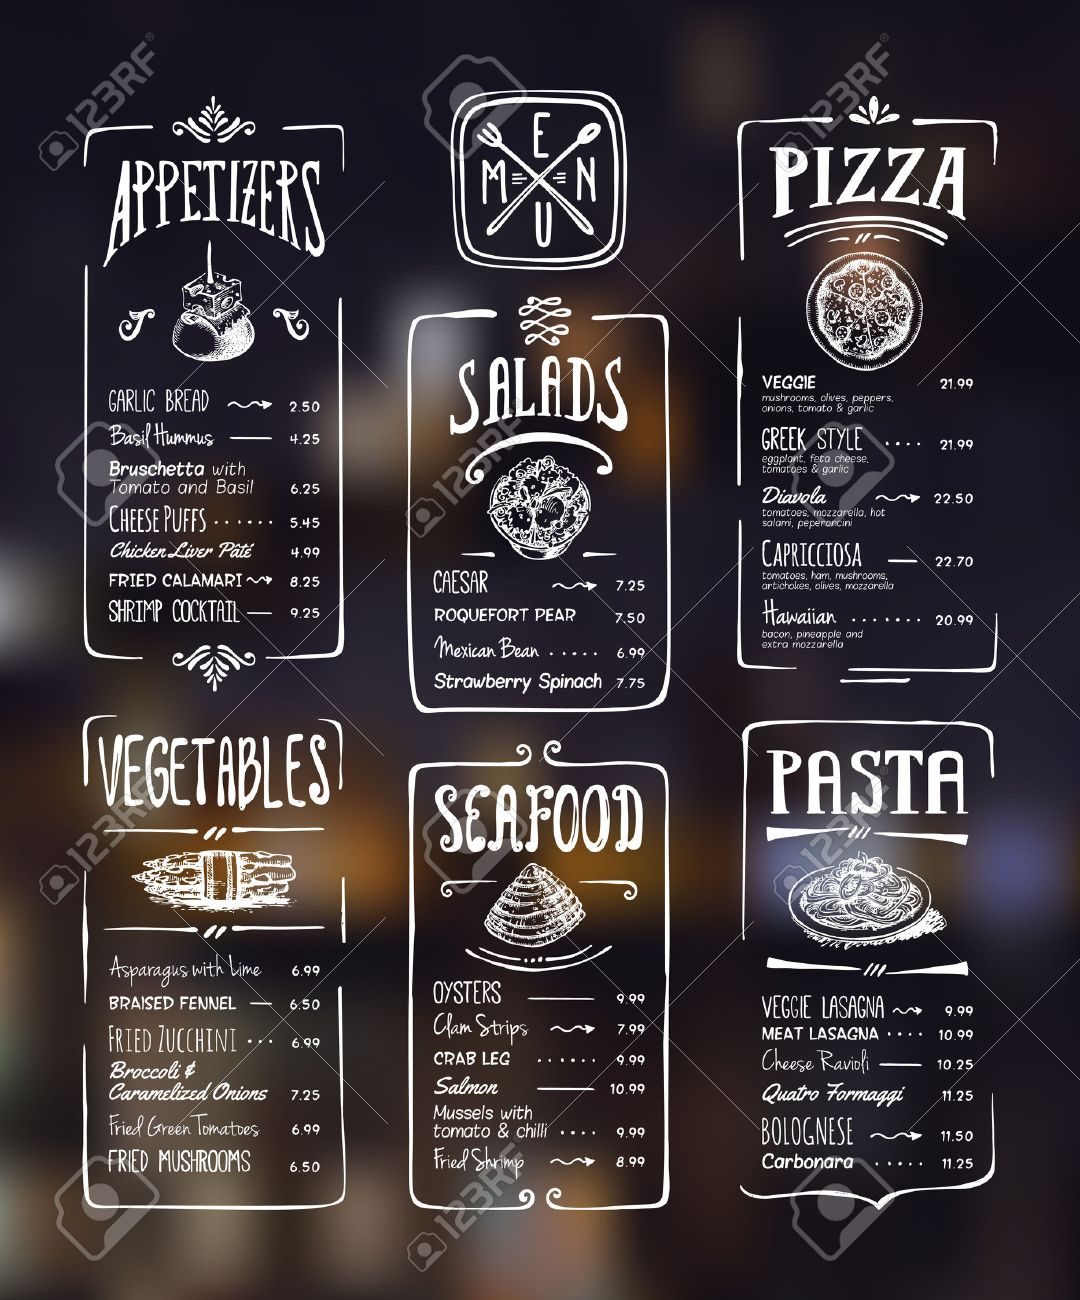 1080x1300 Menu Template. White Drawing On Dark Background. Appetizers